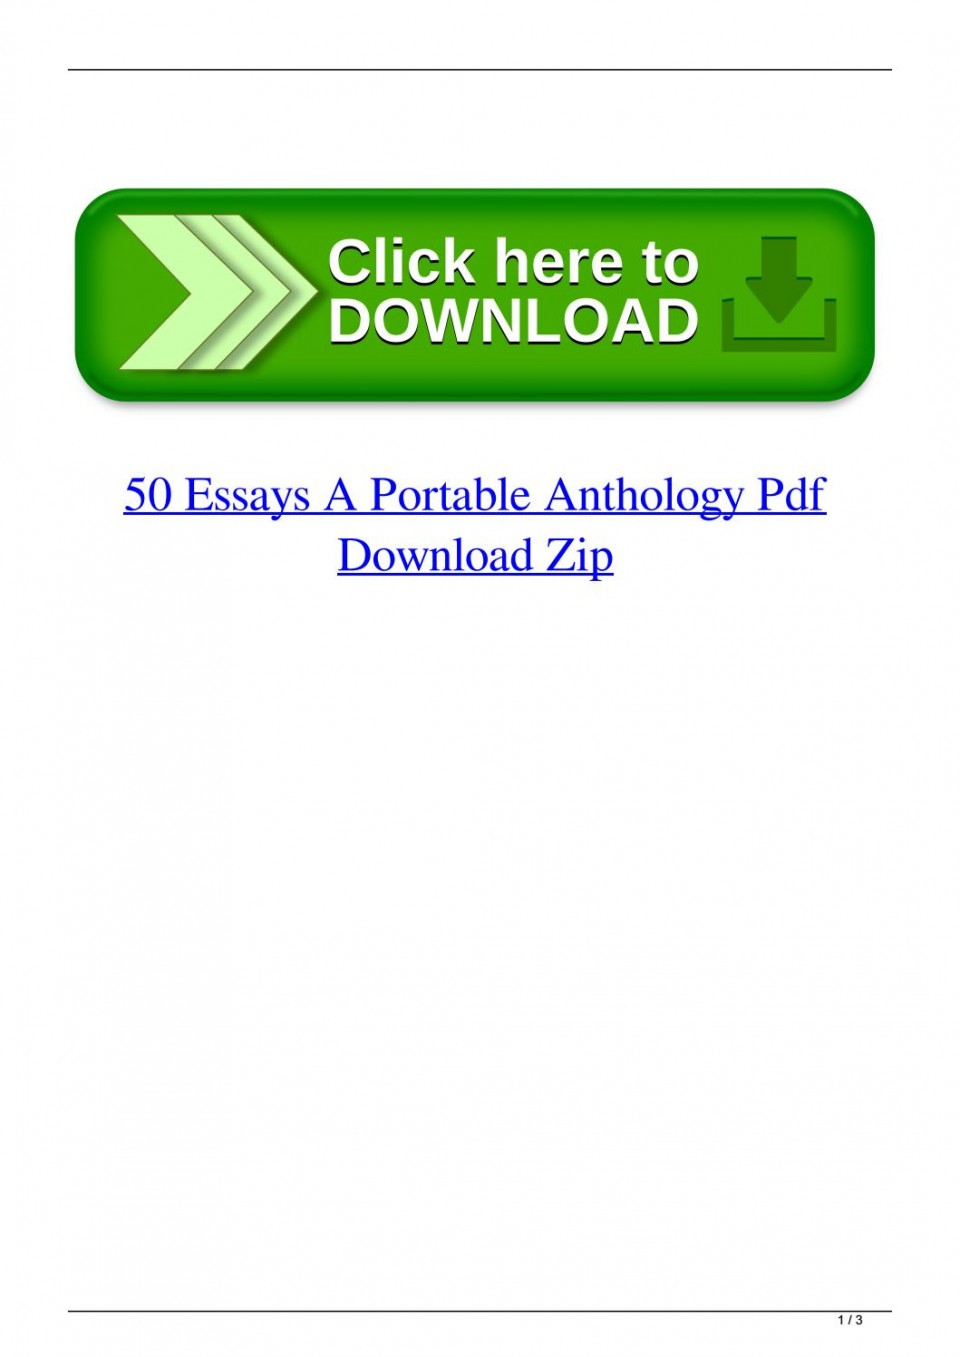 016 Essay Example Page 1 Essays Portable Anthology 4th Edition Awful 50 A Pdf Free 960